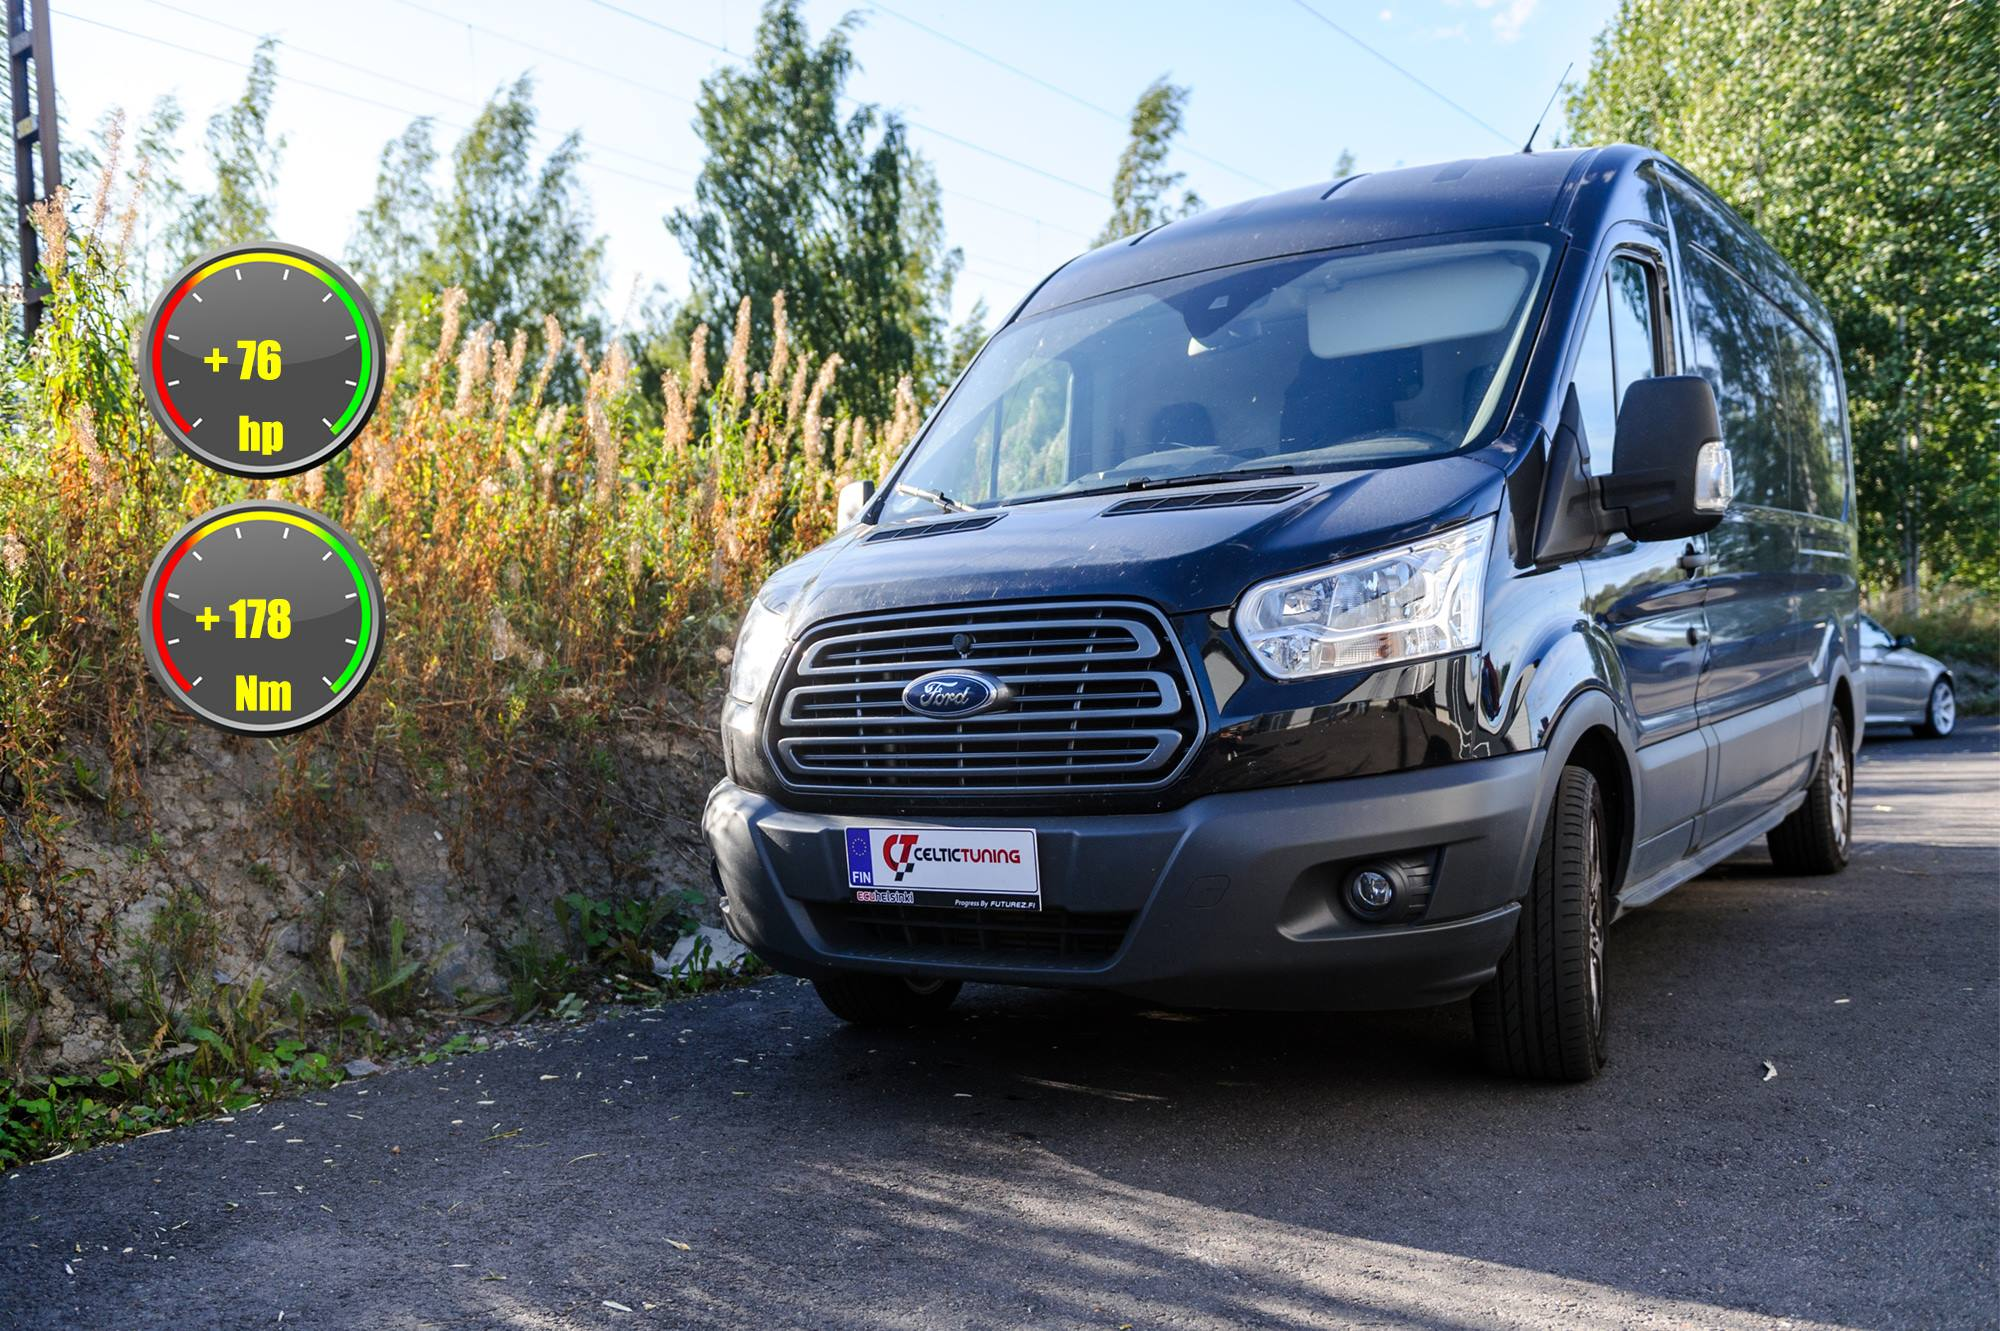 Ford Transit celtic tuning lastutus